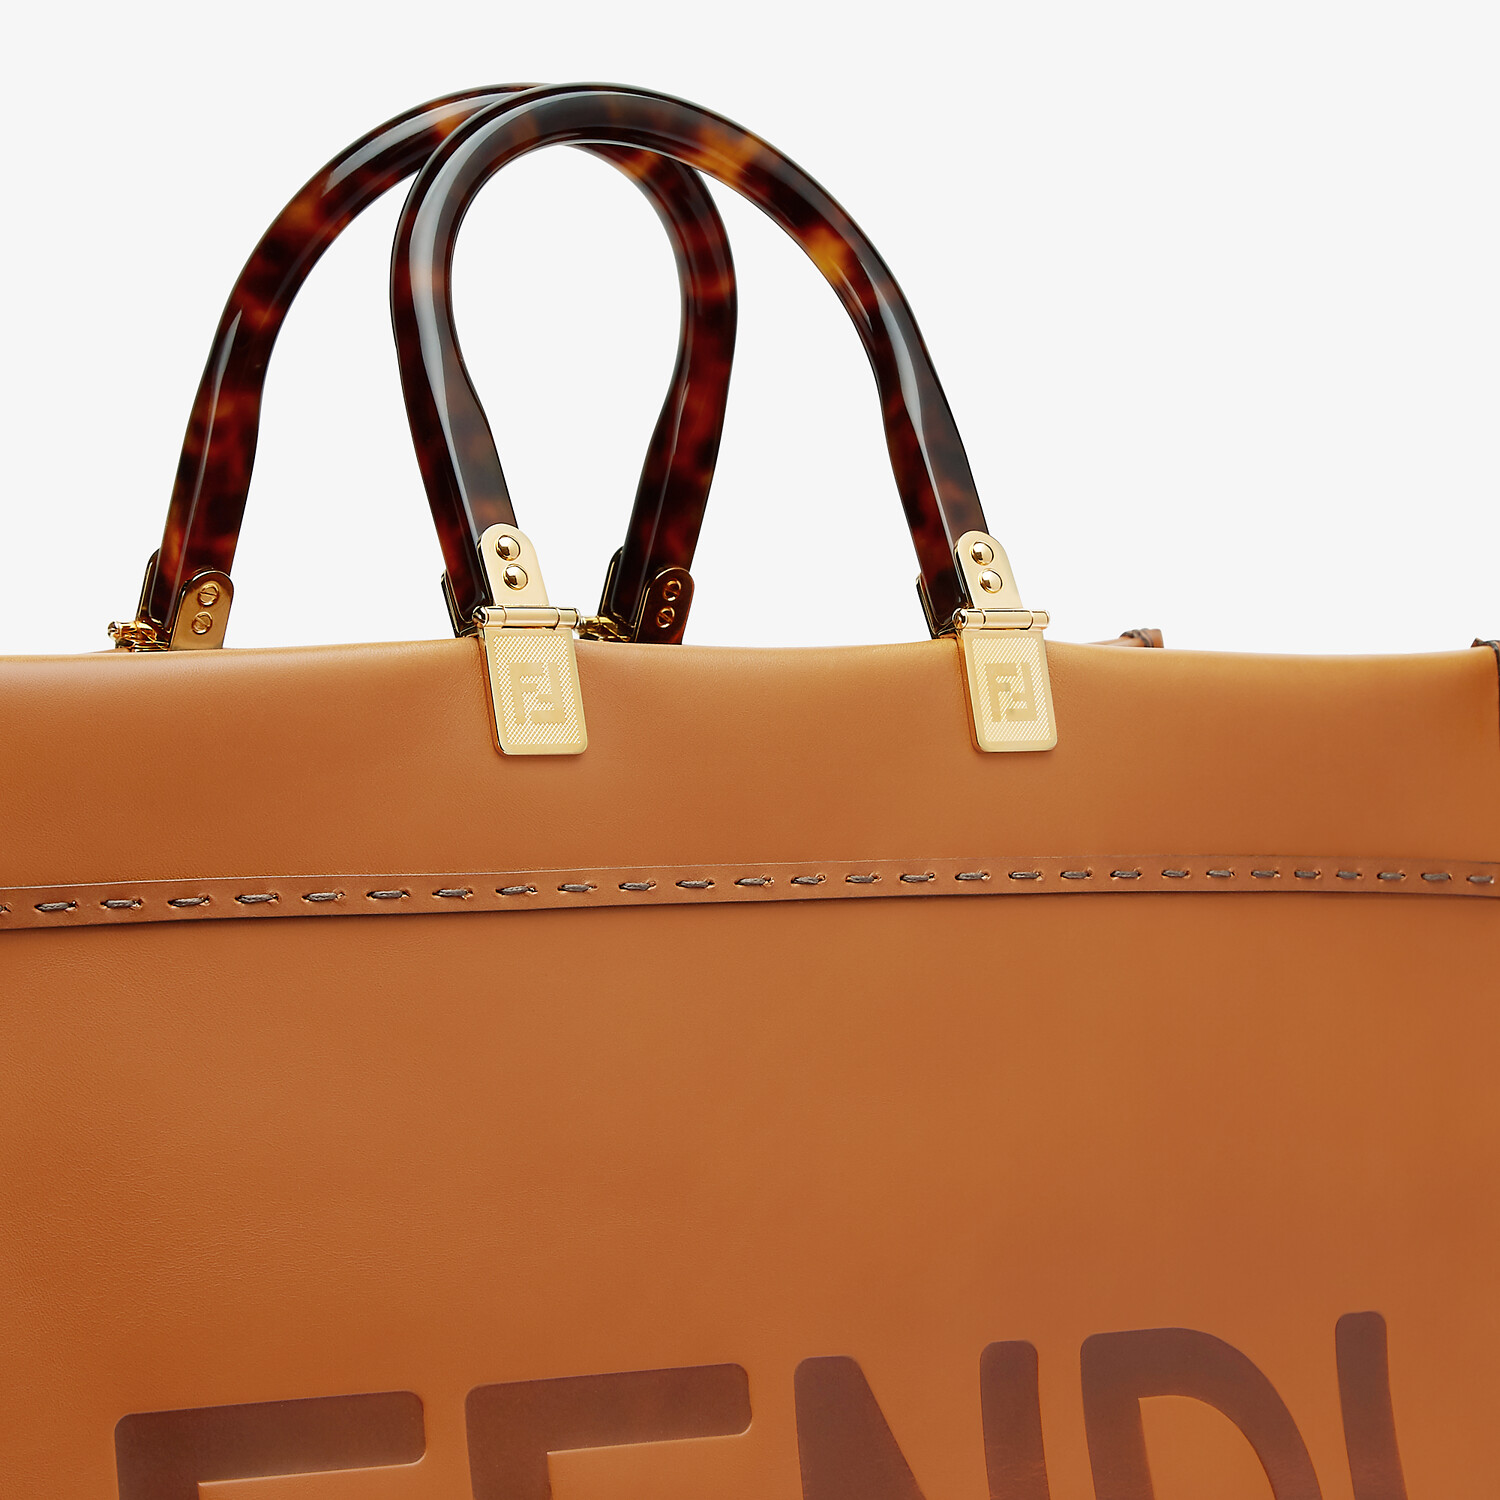 FENDI SUNSHINE SHOPPER - Brown leather shopper - view 6 detail